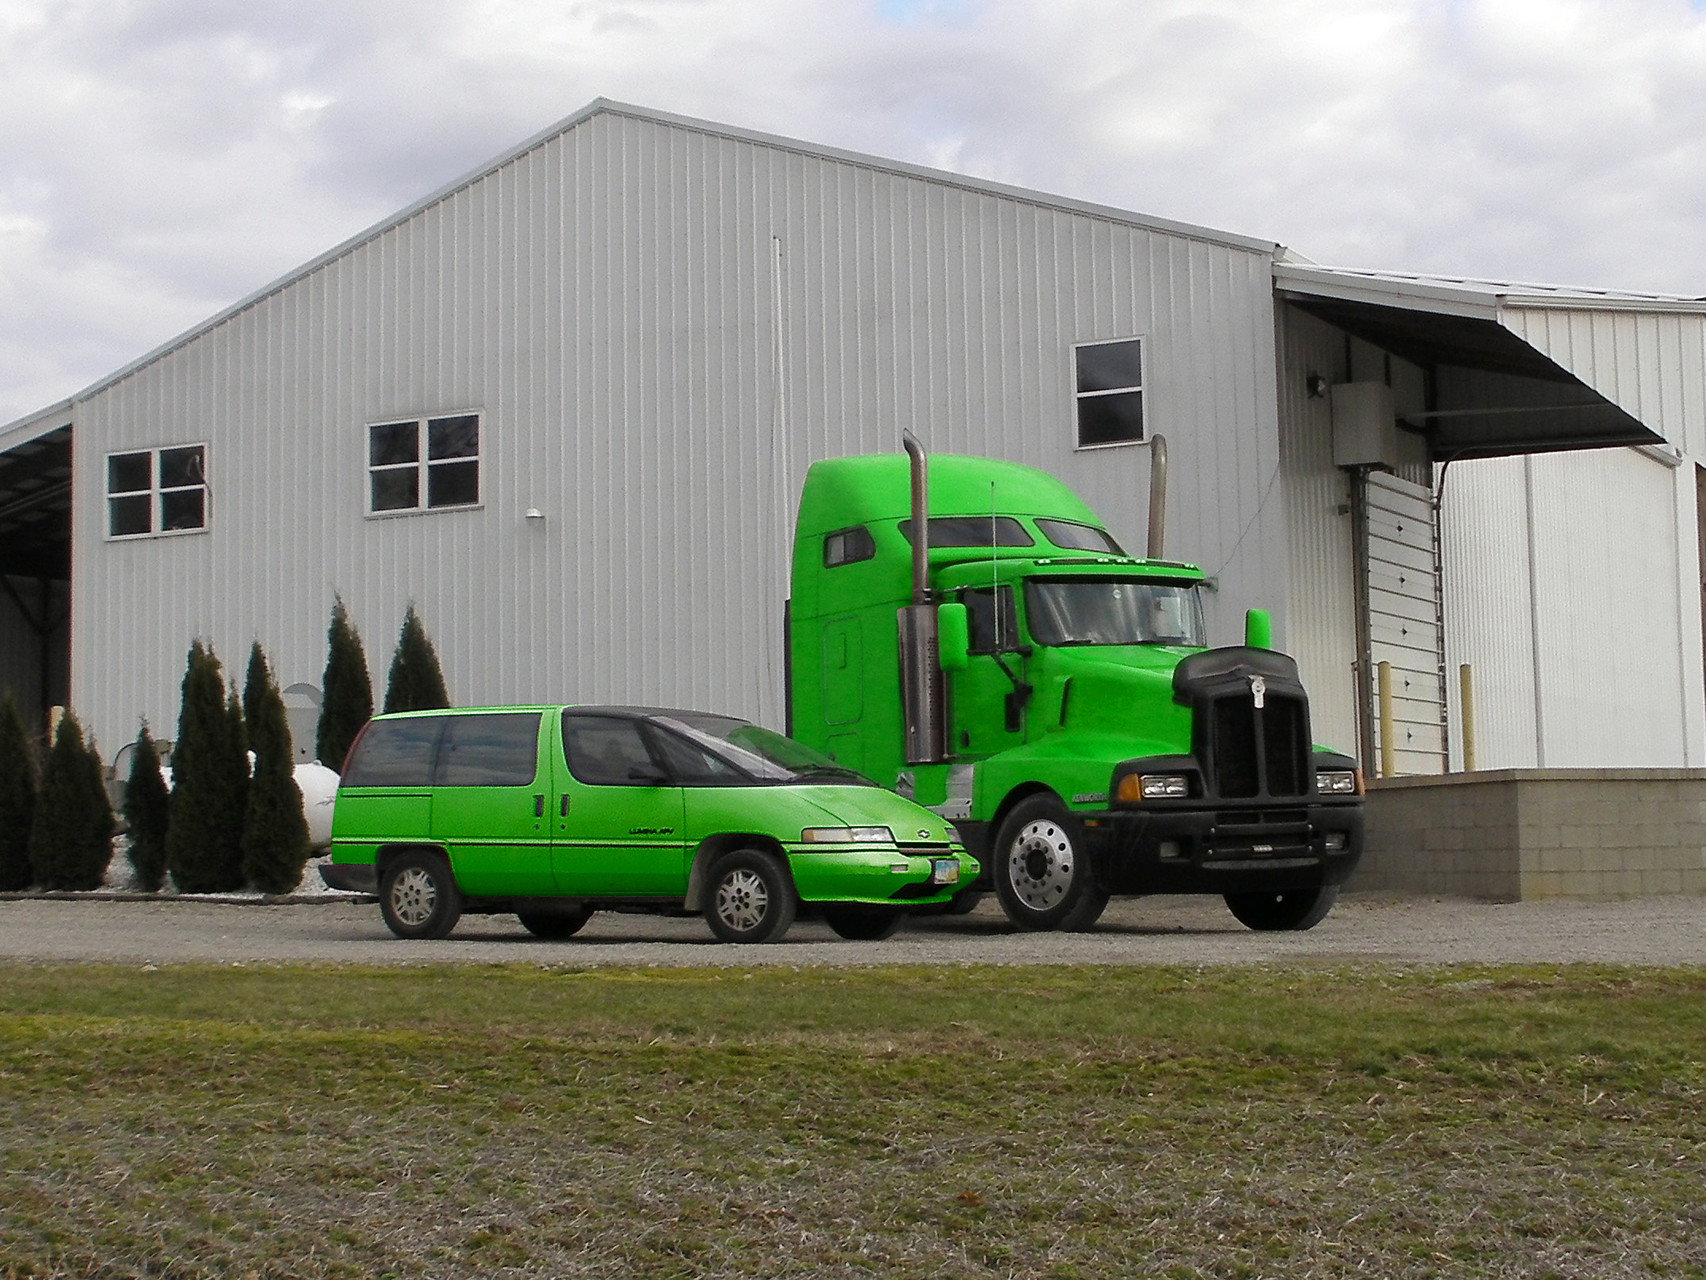 Niama-Reisser, llc First Semi Truck and Car test beds